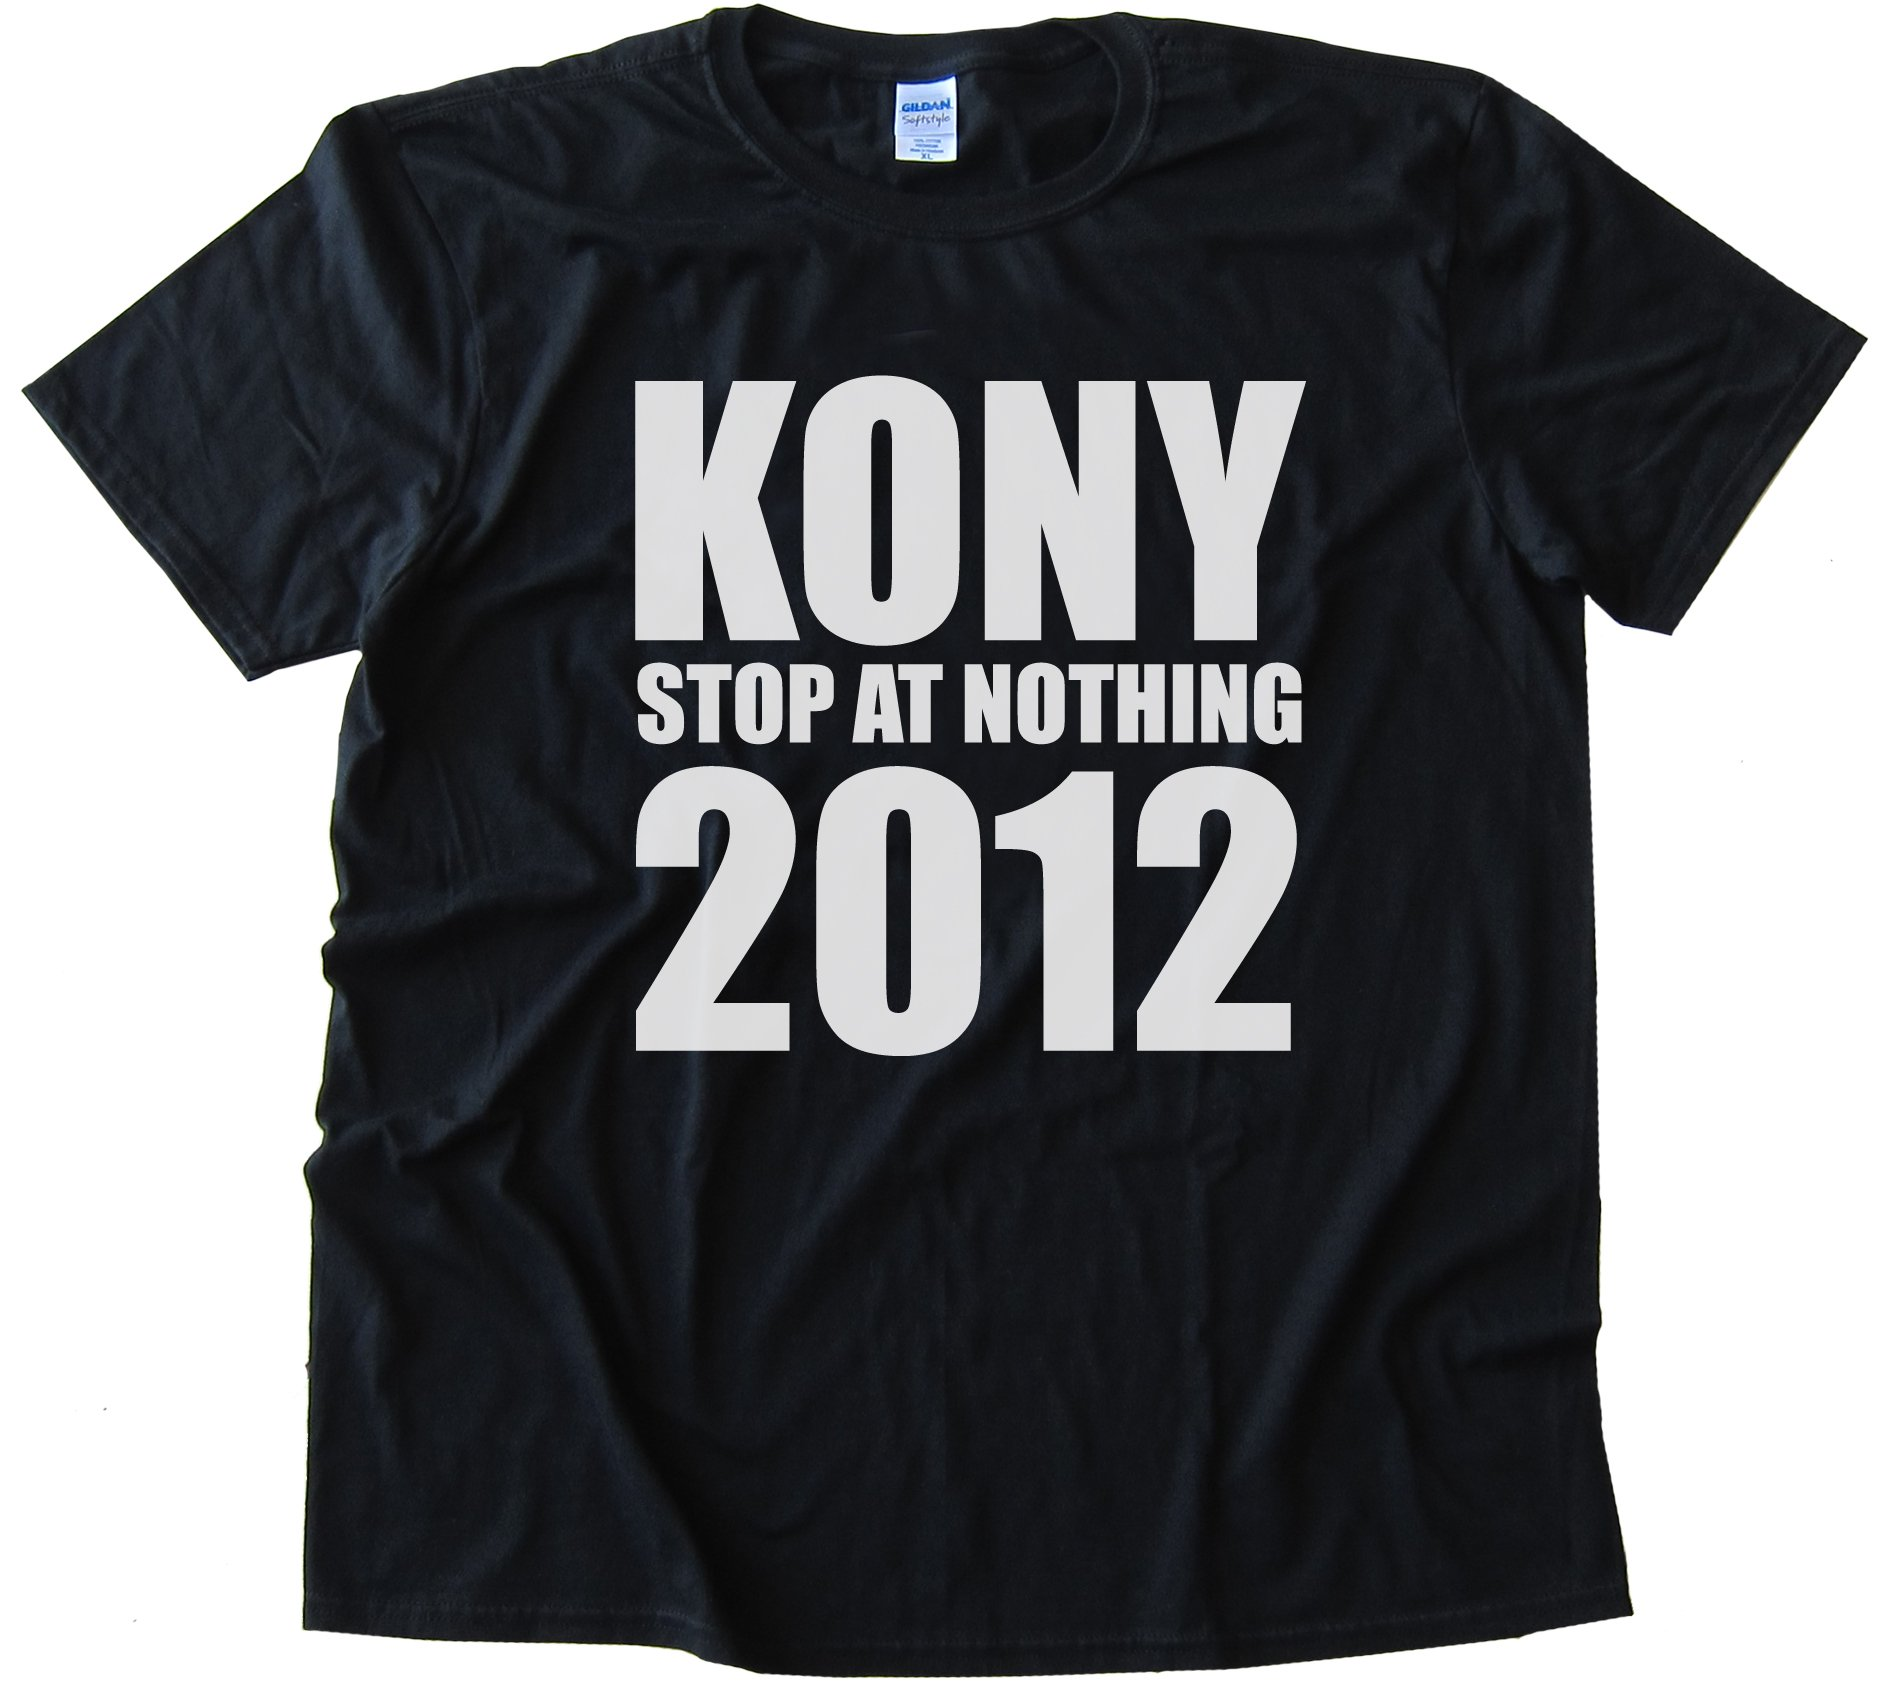 Kony Stop At Nothing 2012 Tee Shirt